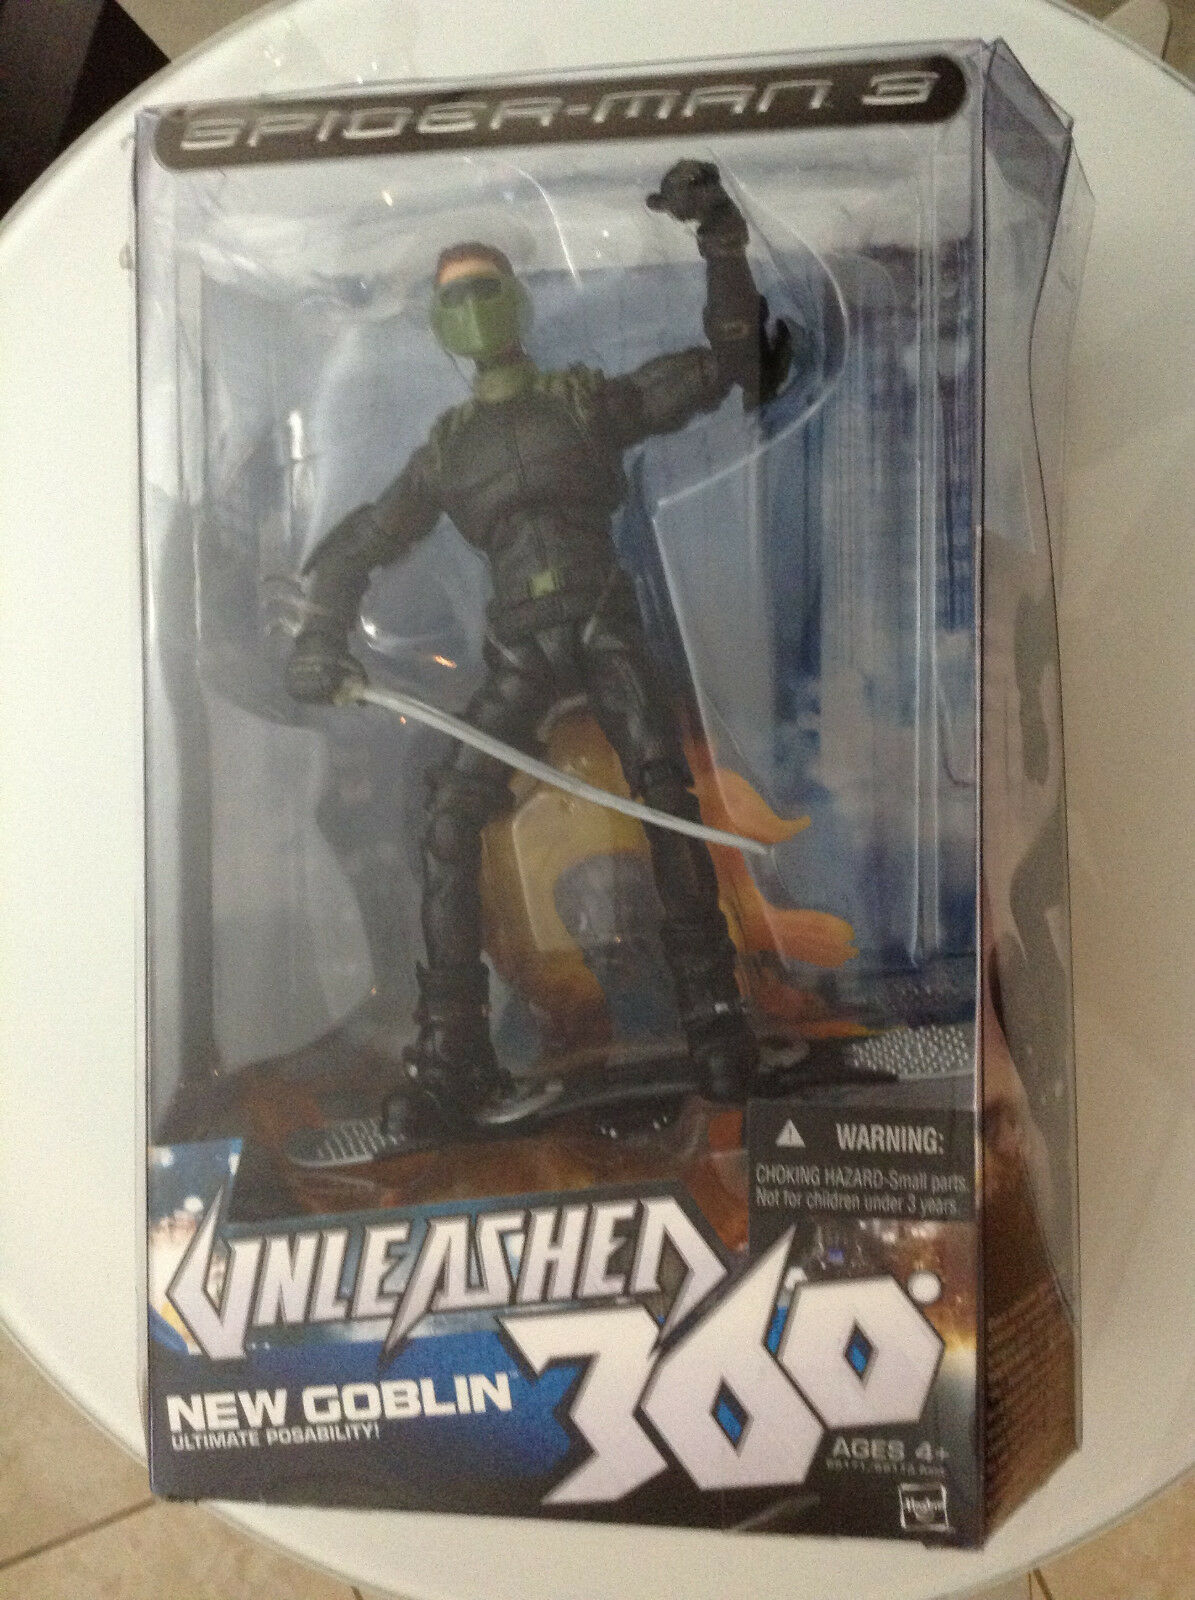 Spider-Man 3 Unleashed 360 Nuevo Duende Ultimate posability 8  Deluxe Figura ahora 1